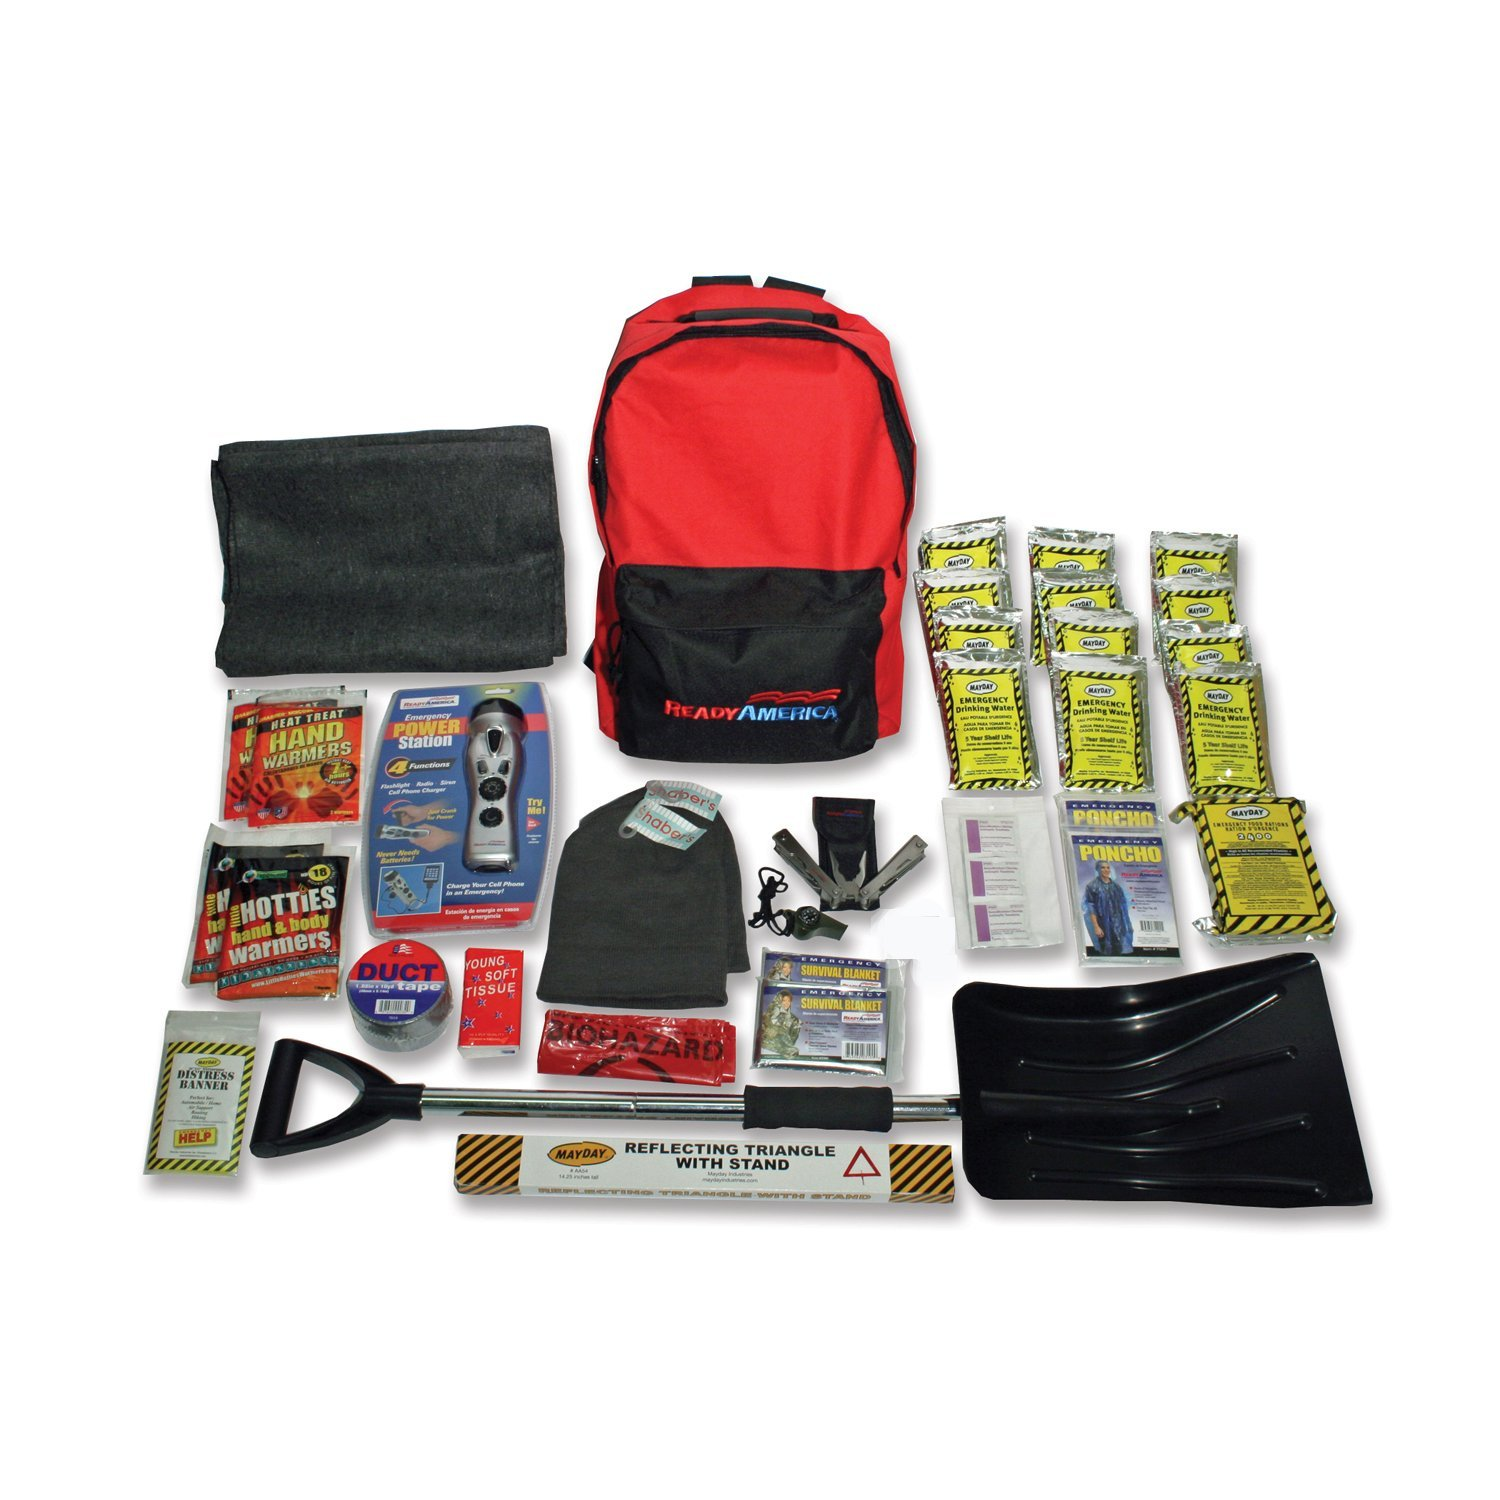 Ready America 2Person Cold Weather Survival Kit-3 Day Pack